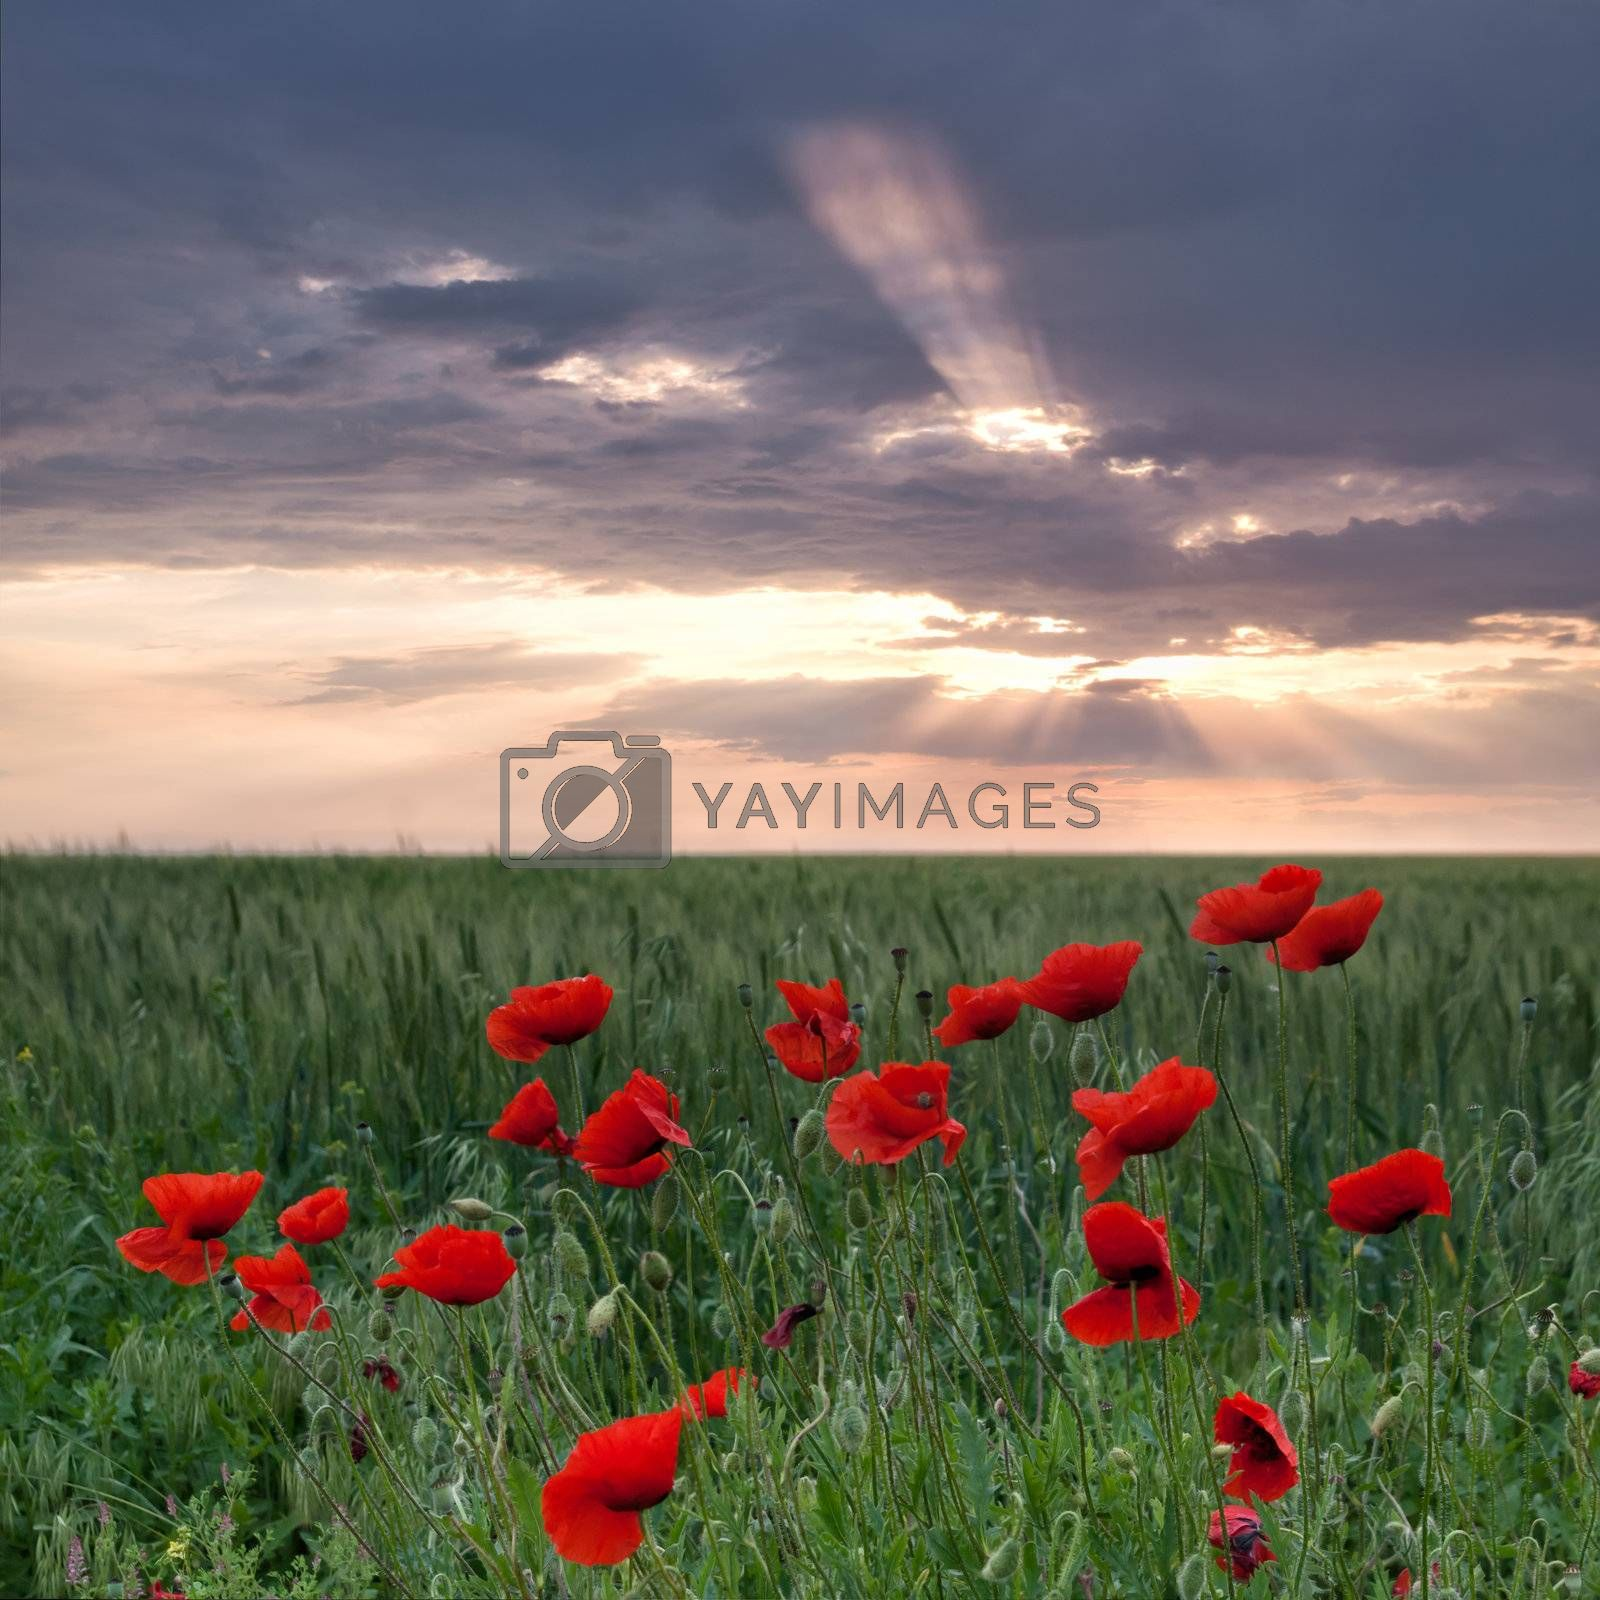 Poppies on a green field with sun beams through clouds in the sky